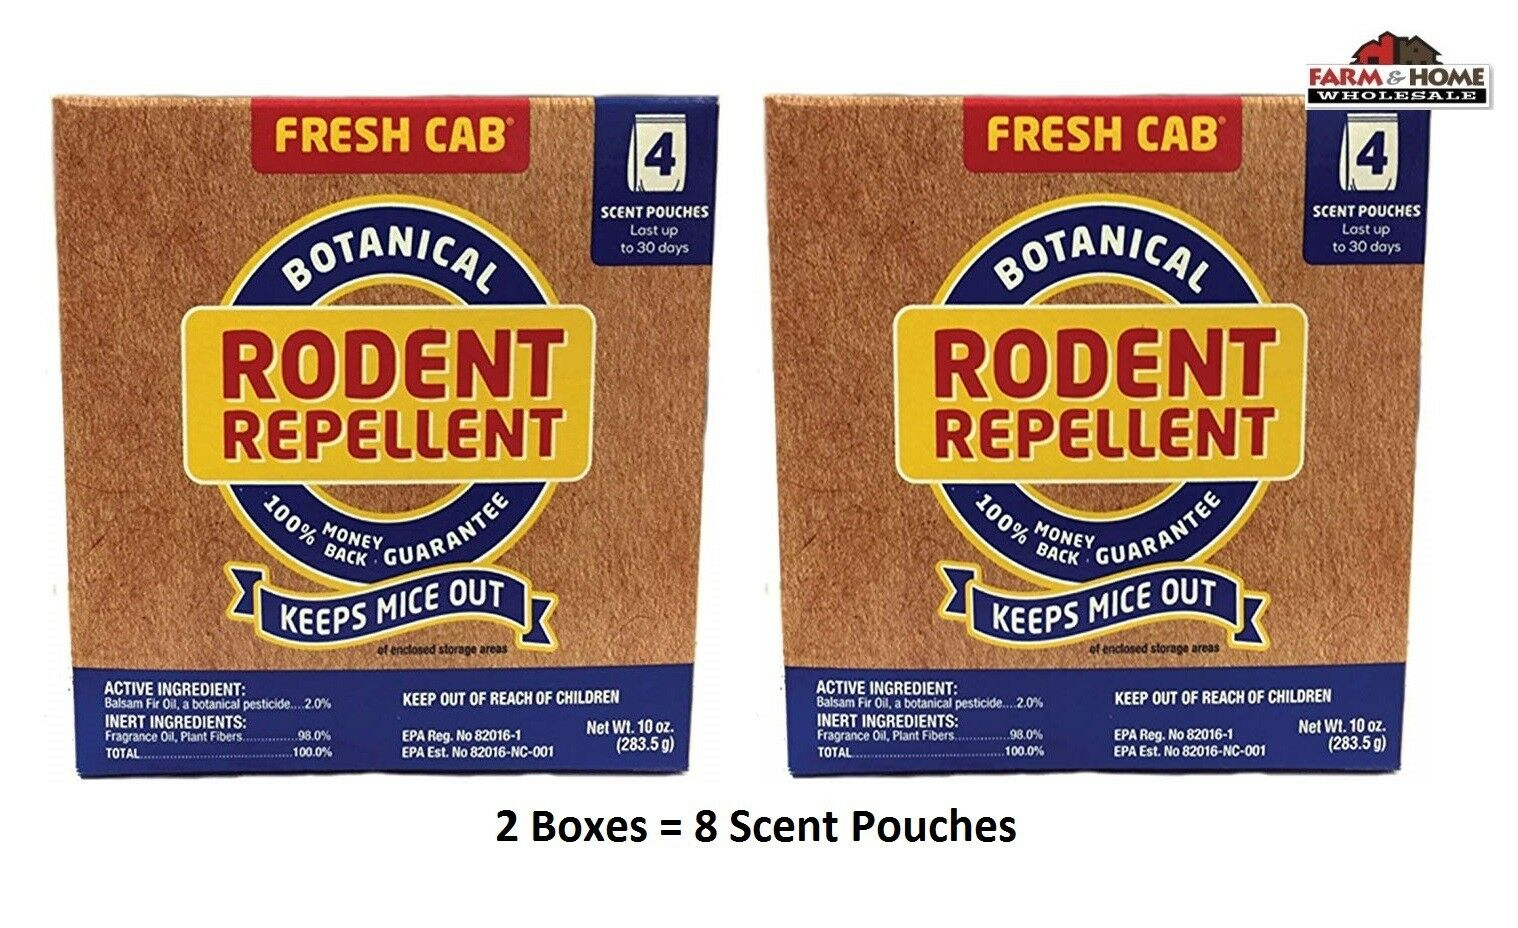 ea Fresh Cab FC6 4 Pouch Pack Botanical Mouse / Rodent Cont